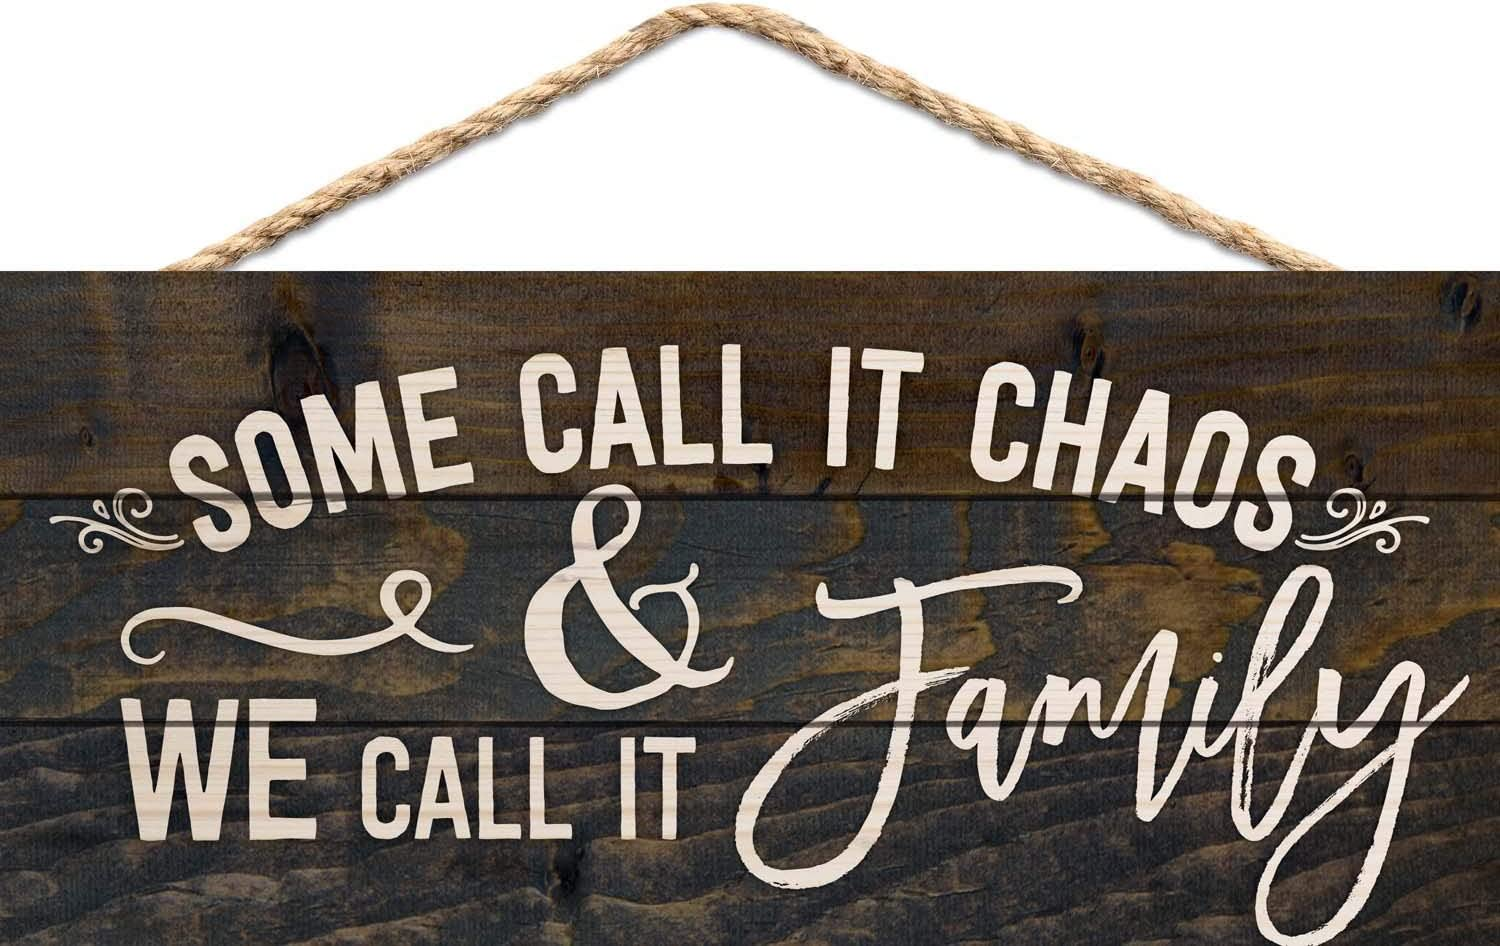 Some Call it Chaos We Call it Family 10 x 5 inch Wood Plank Design Hanging Sign